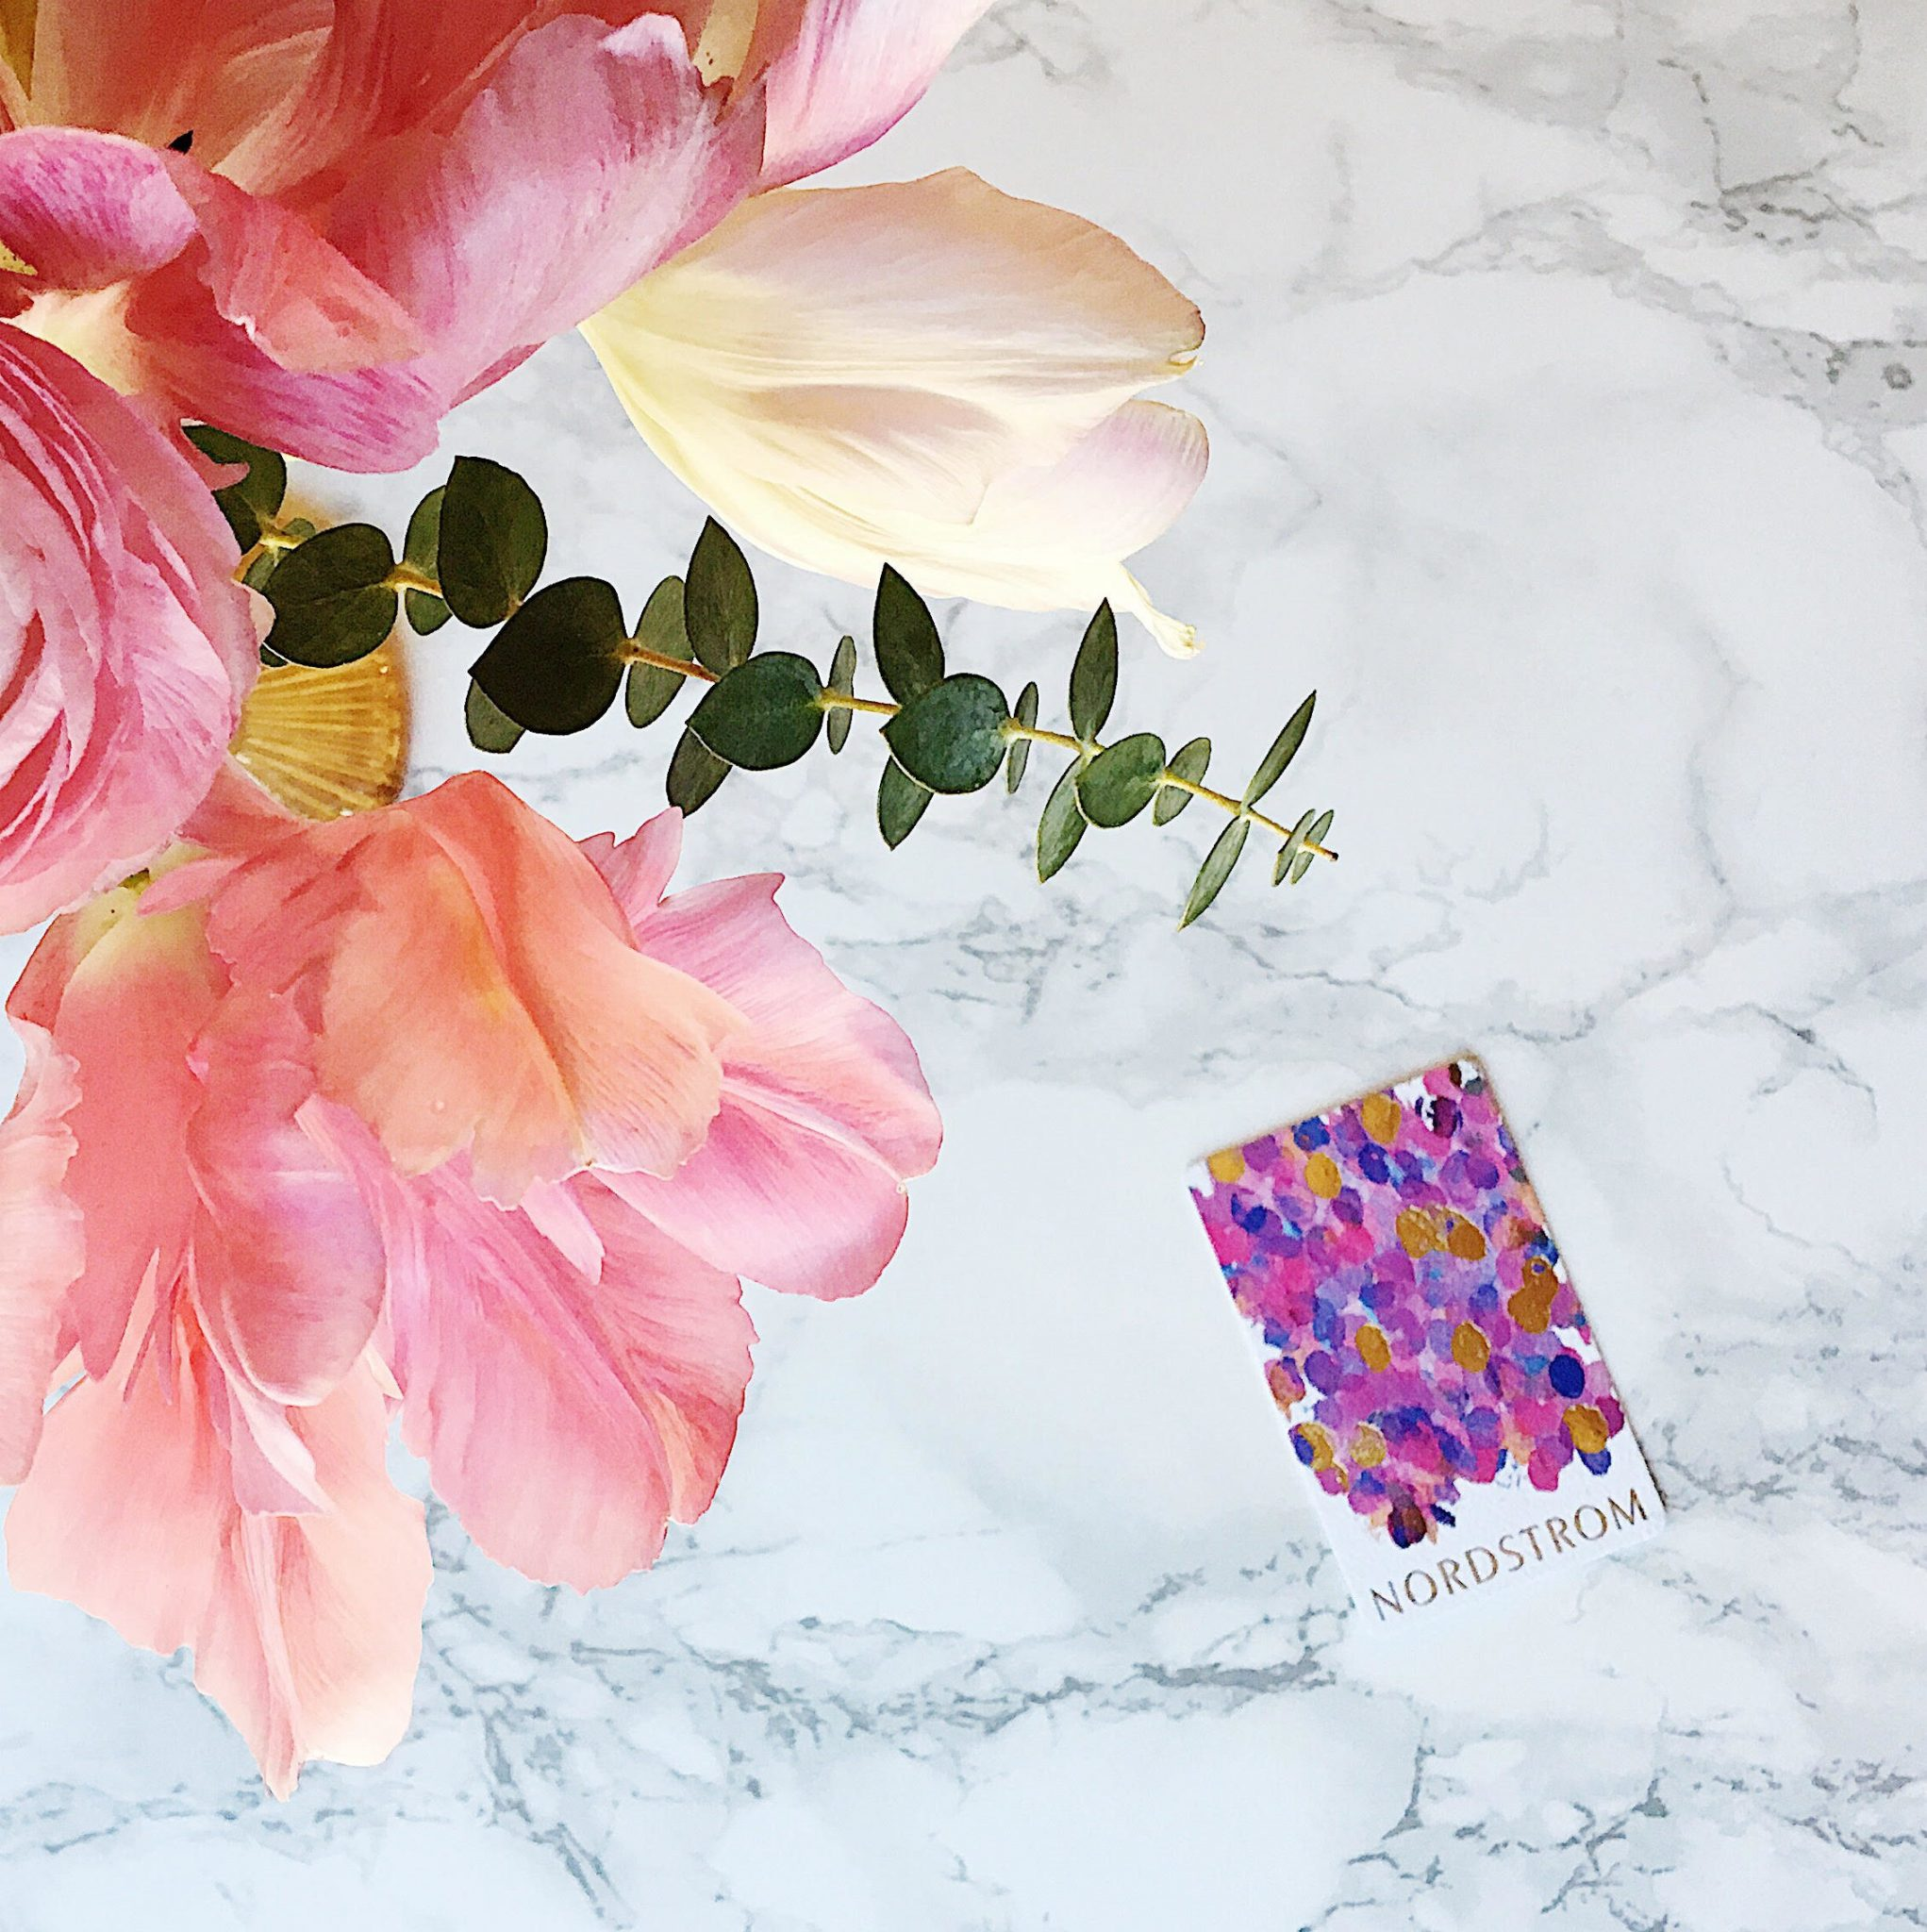 Nordstrom Gift Card Giveaway